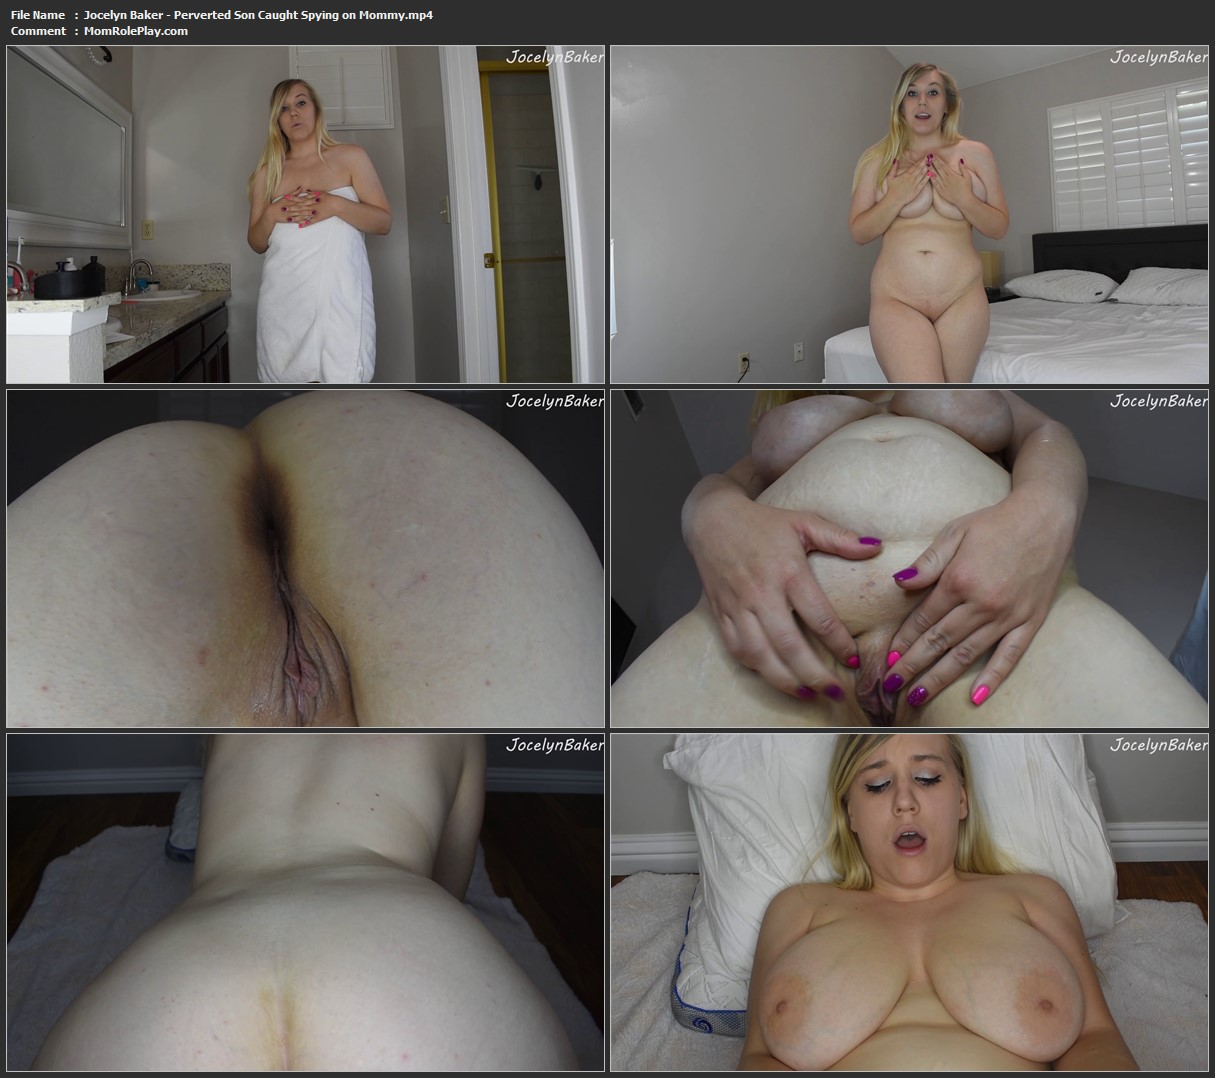 Jocelyn Baker - Perverted Son Caught Spying on Mommy